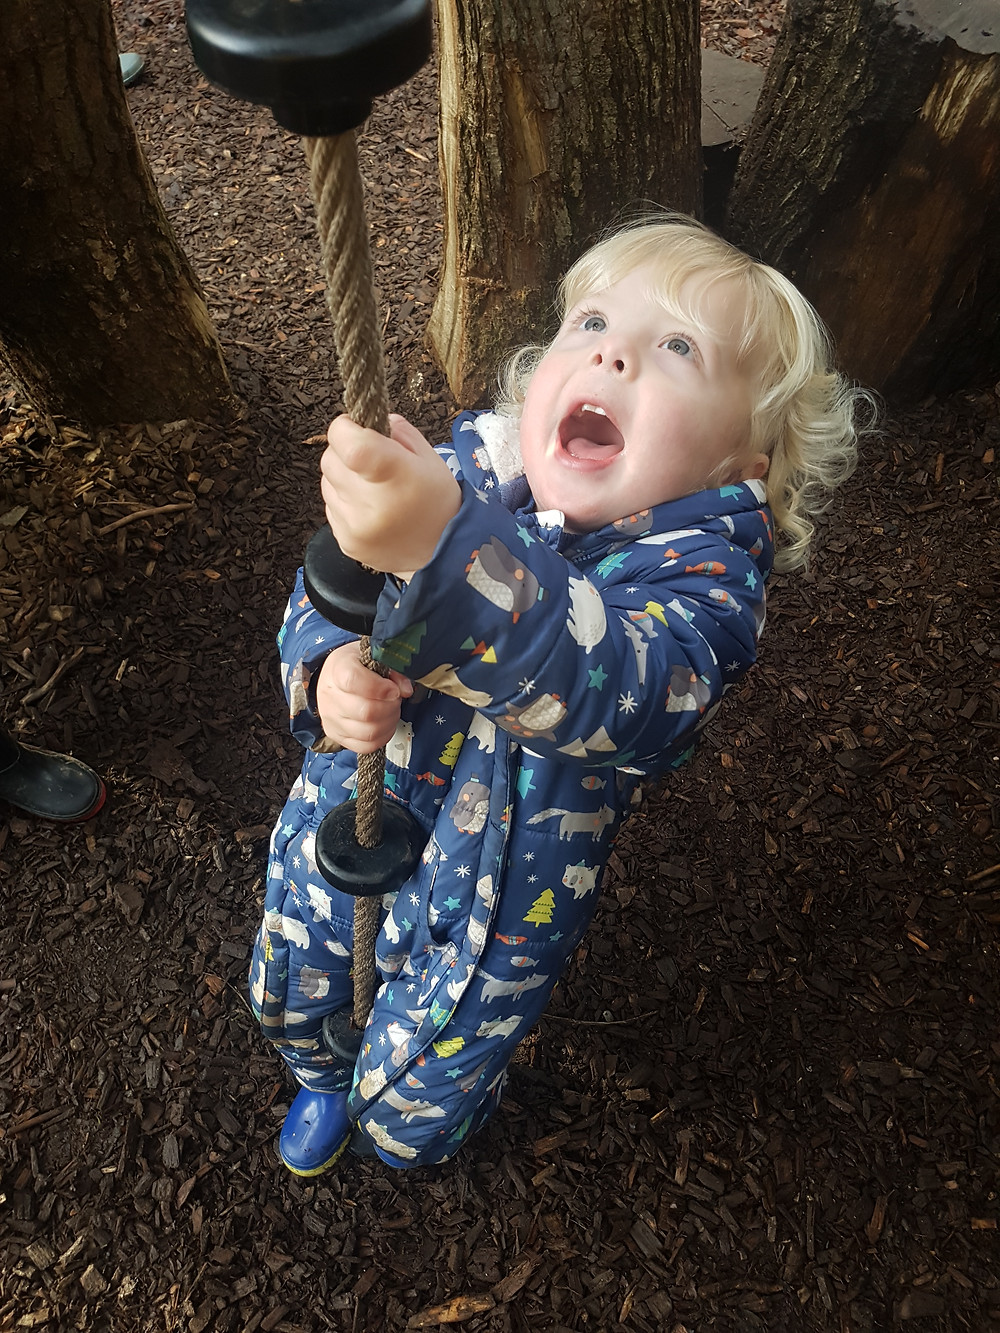 Toddler outdoors in playground